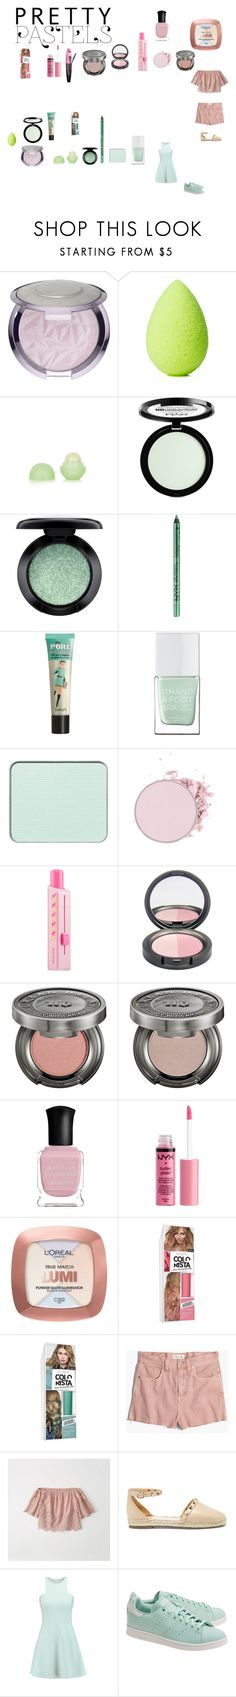 """pastel make up"" by effyswanhaze ❤ liked on Polyvore featuring beauty, beautyblender, Eos, NYX, MAC Cosmetics, Benefit, The Hand & Foot Spa, shu uemura, Sephora Collection and Urban Decay"